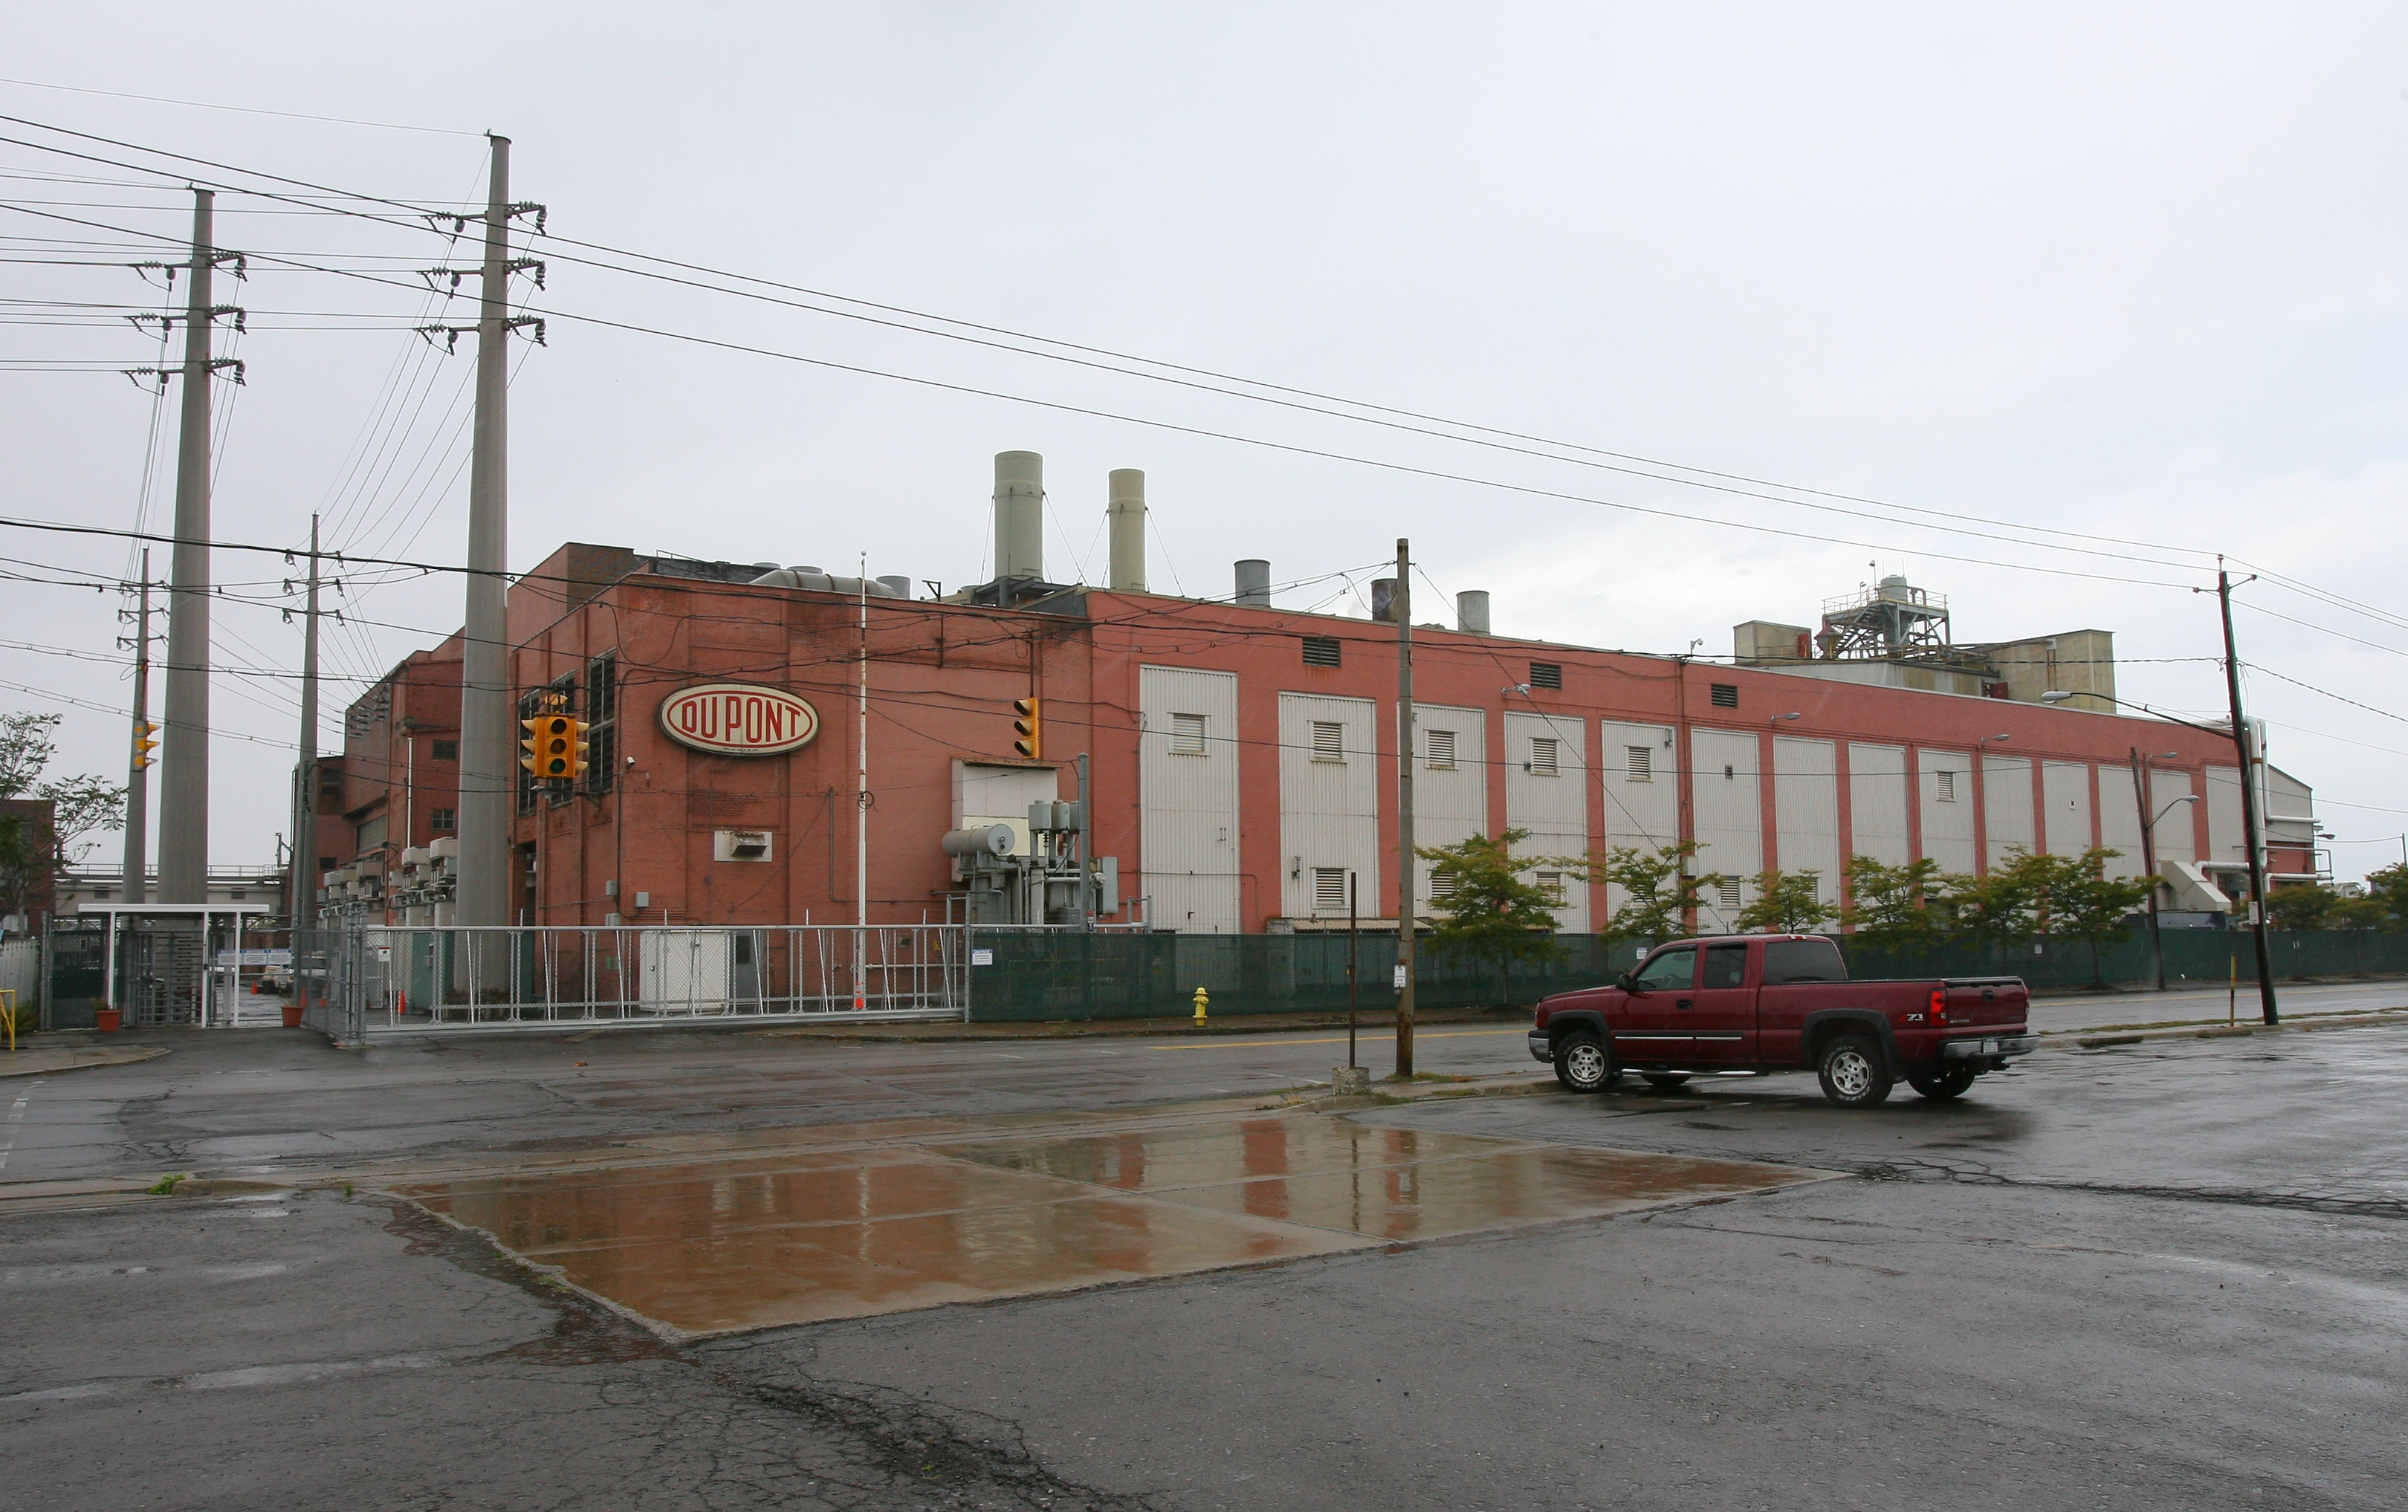 Although DuPont's plant in Niagara Falls is now run by Chemours, it continues to make the same reactive metals. It also kept all of its roughly 200 employees.